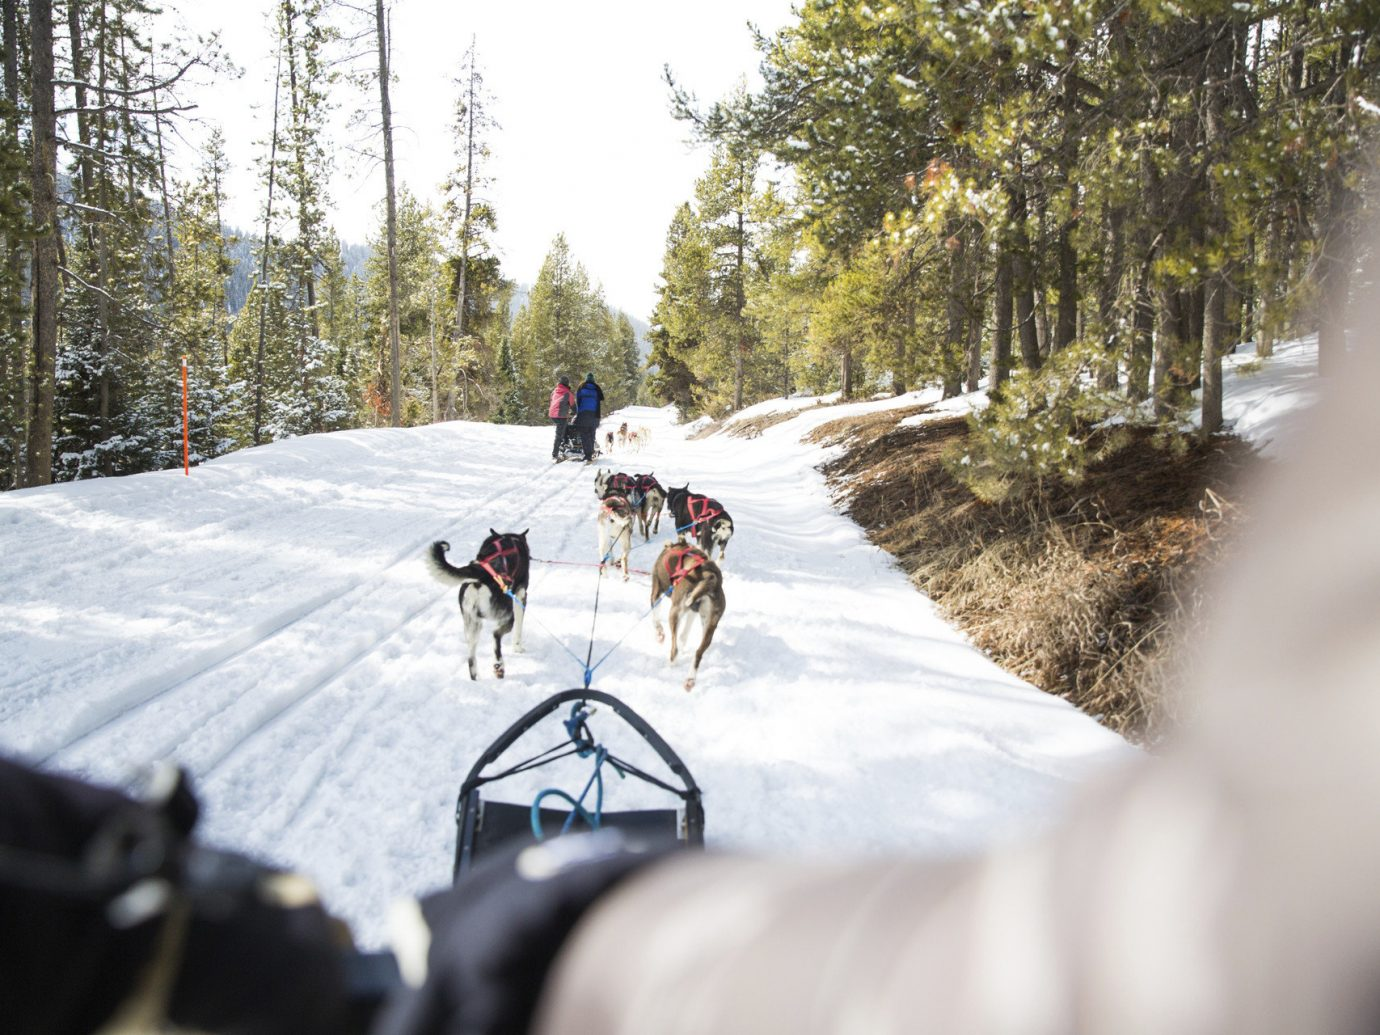 Trip Ideas Weekend Getaways tree outdoor snow transport vehicle land vehicle person Winter racing winter sport bicycle sports slope wooded